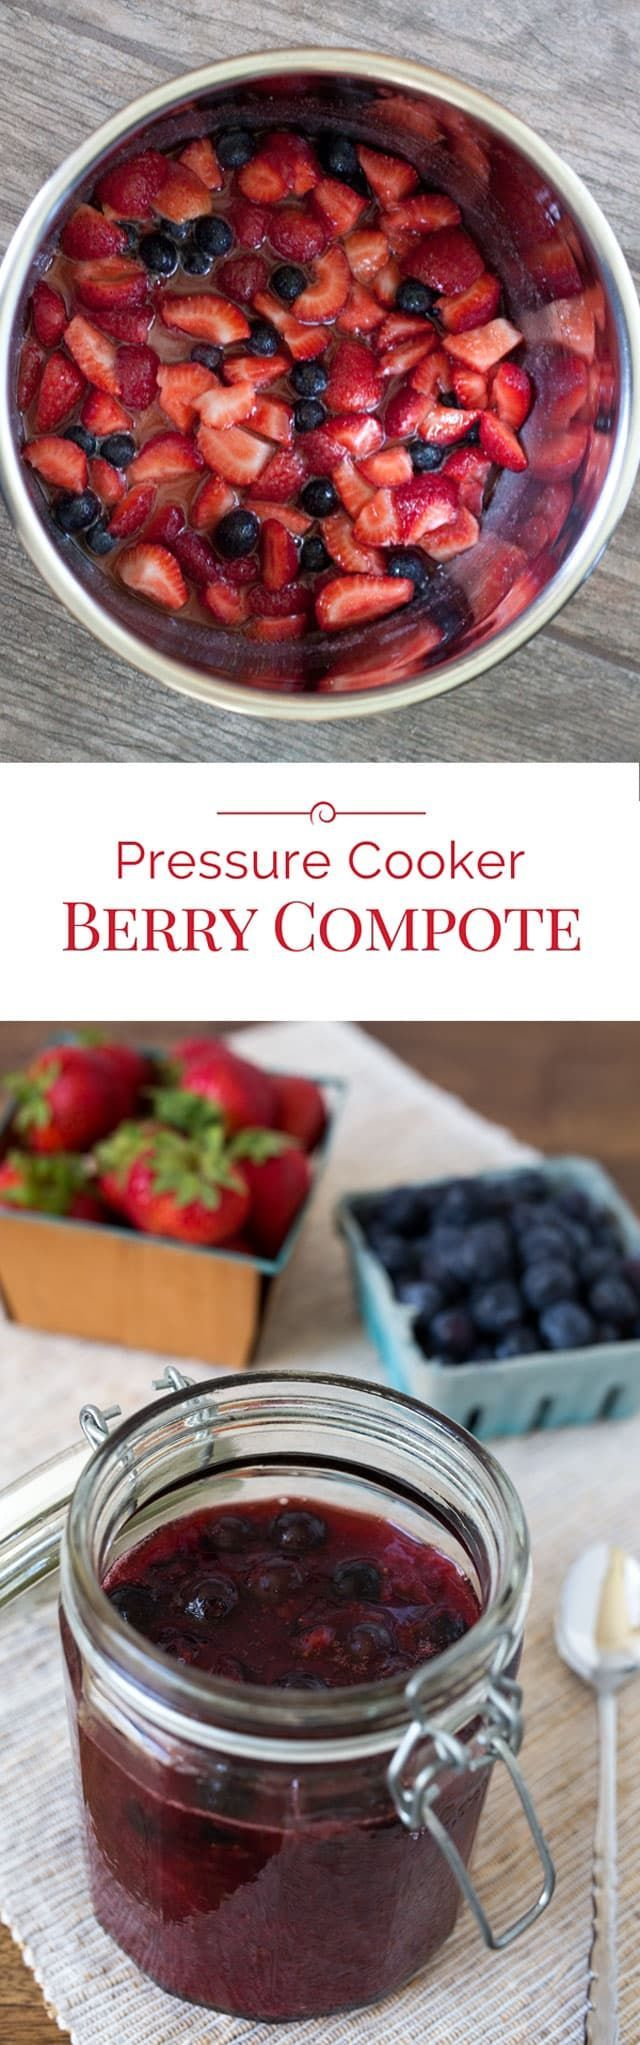 A quick, easy-to-make, delicious Pressure Cooker Berry Compote made with juicy, sweet fresh strawberries and blueberries. . . #compote #berries #pressurecooking